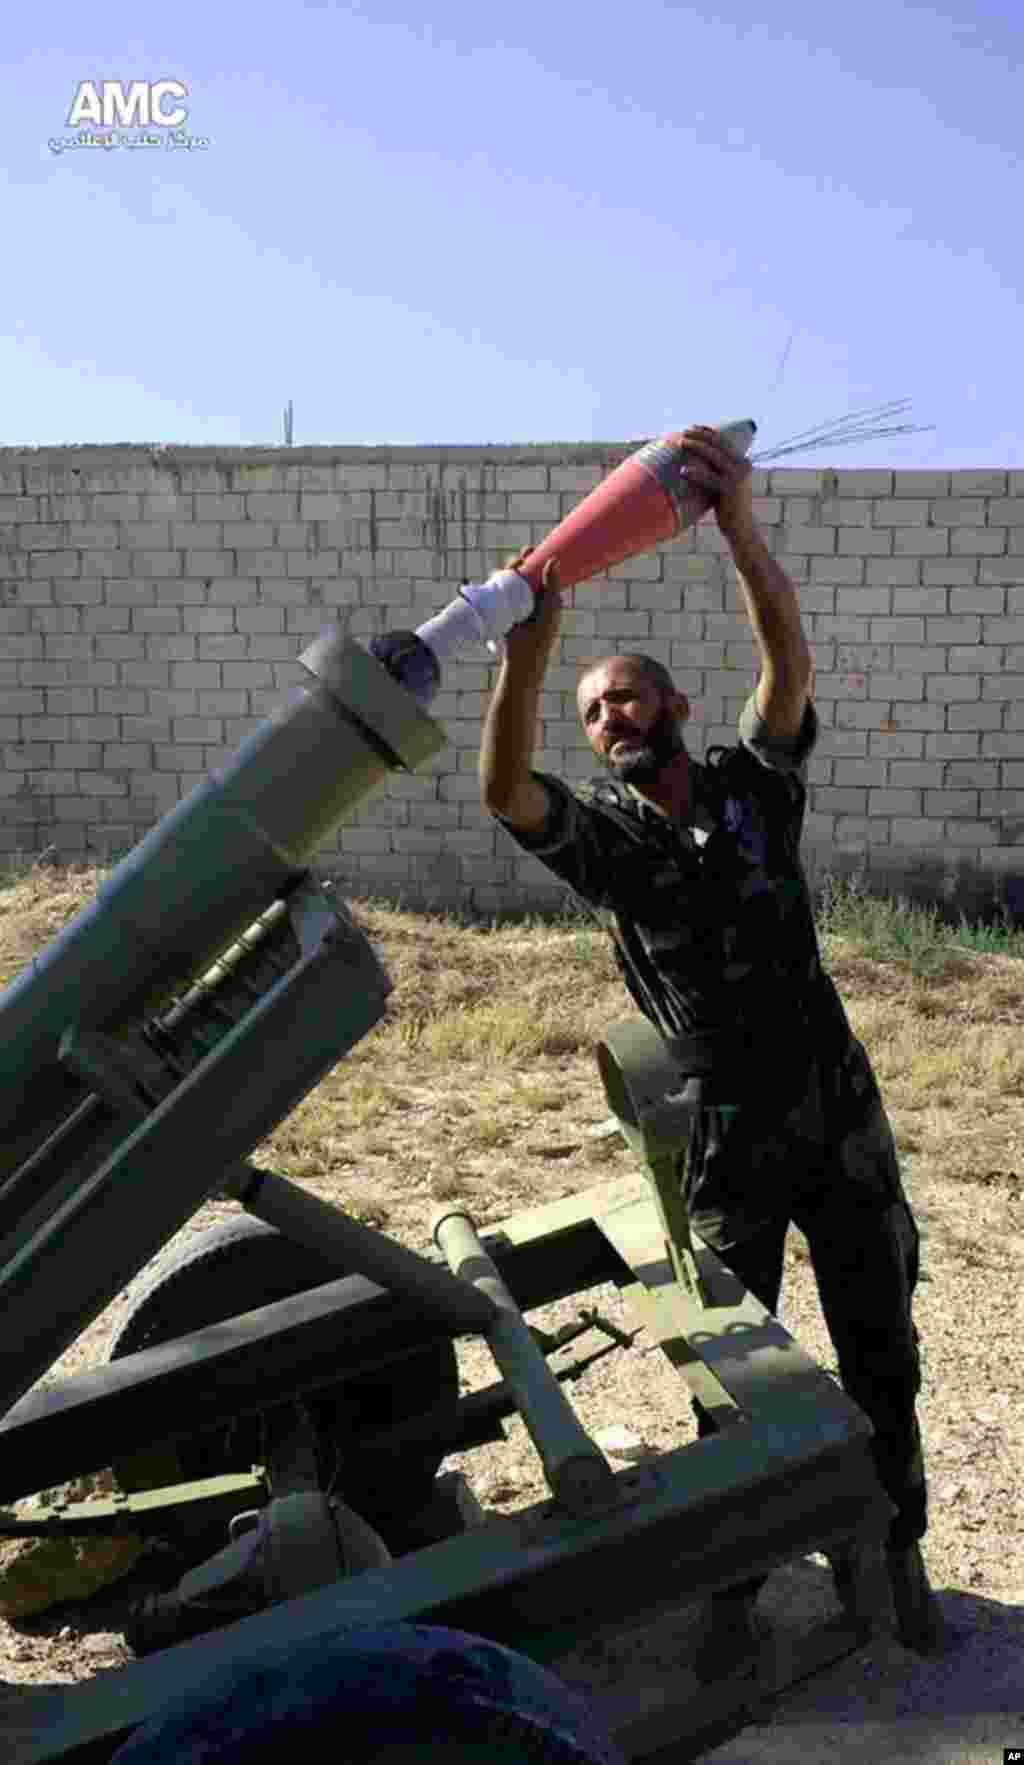 This citizen journalism image provided by Aleppo Media Center AMC shows a Free Syrian army fighter moments before firing a heavy mortar toward the airport in Aleppo, Syria, Sept. 2, 2013.